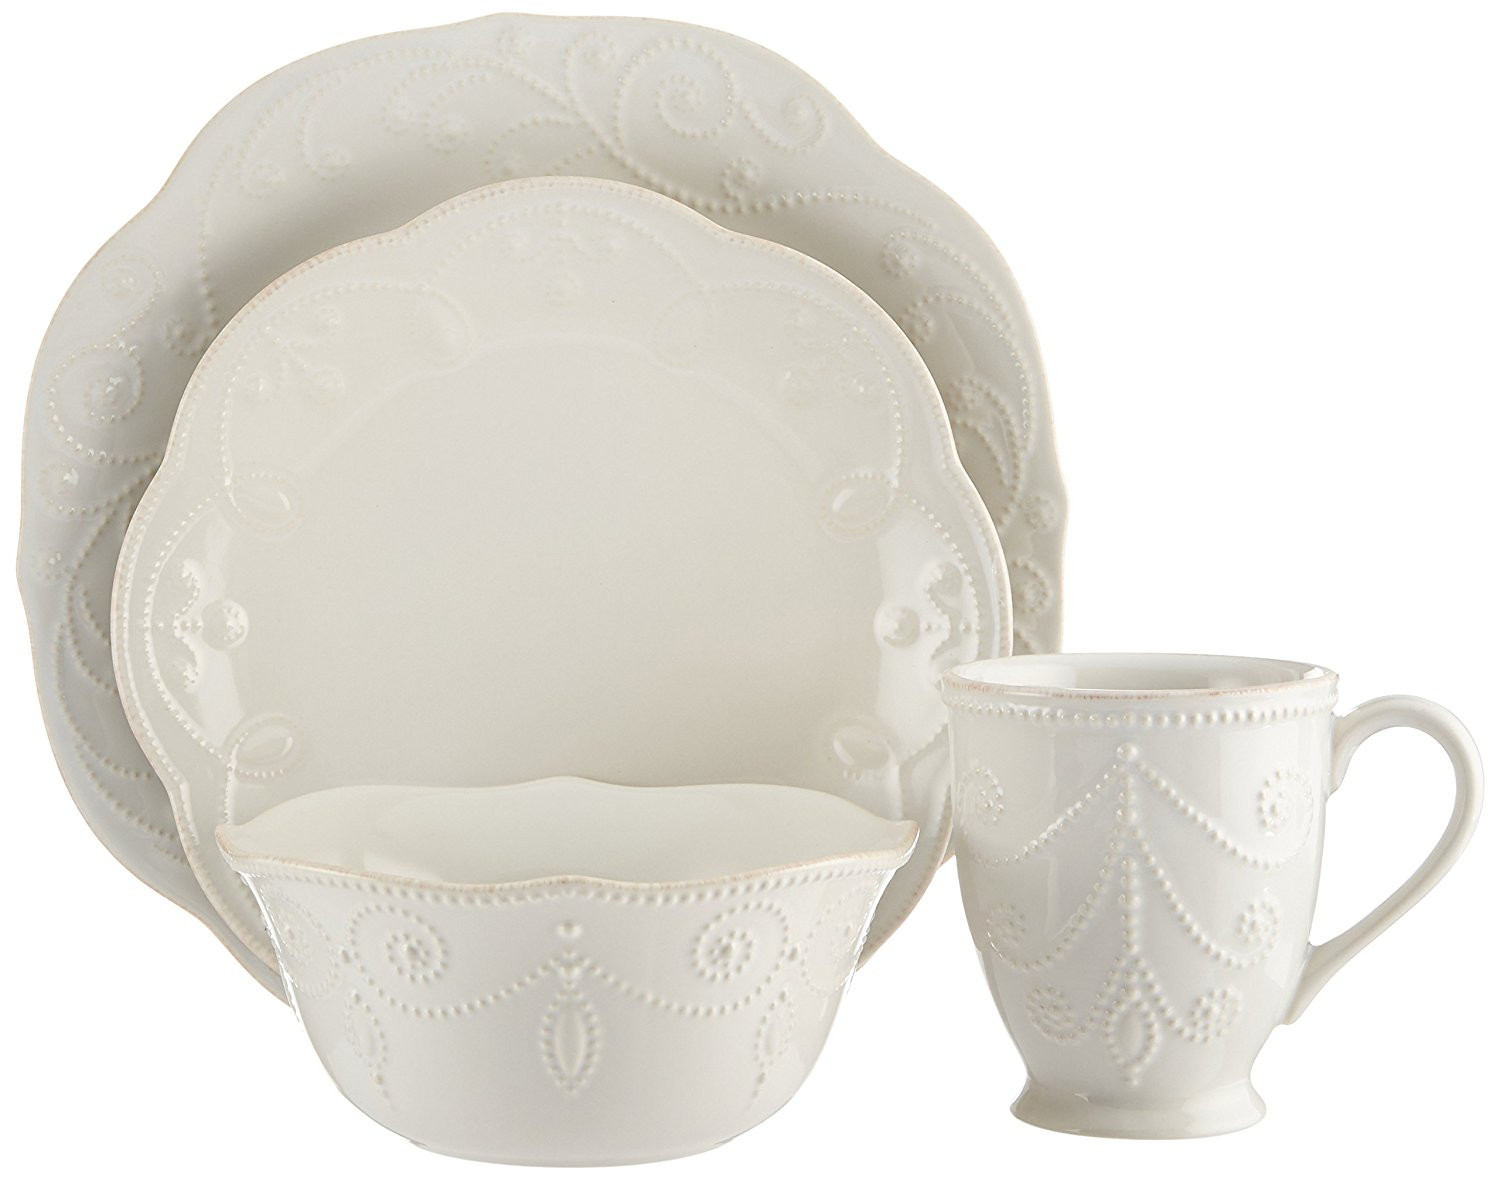 lenox china vases discontinued of amazon com lenox french perle 4 piece place setting white dinner for amazon com lenox french perle 4 piece place setting white dinner set white round beaded kitchen dining